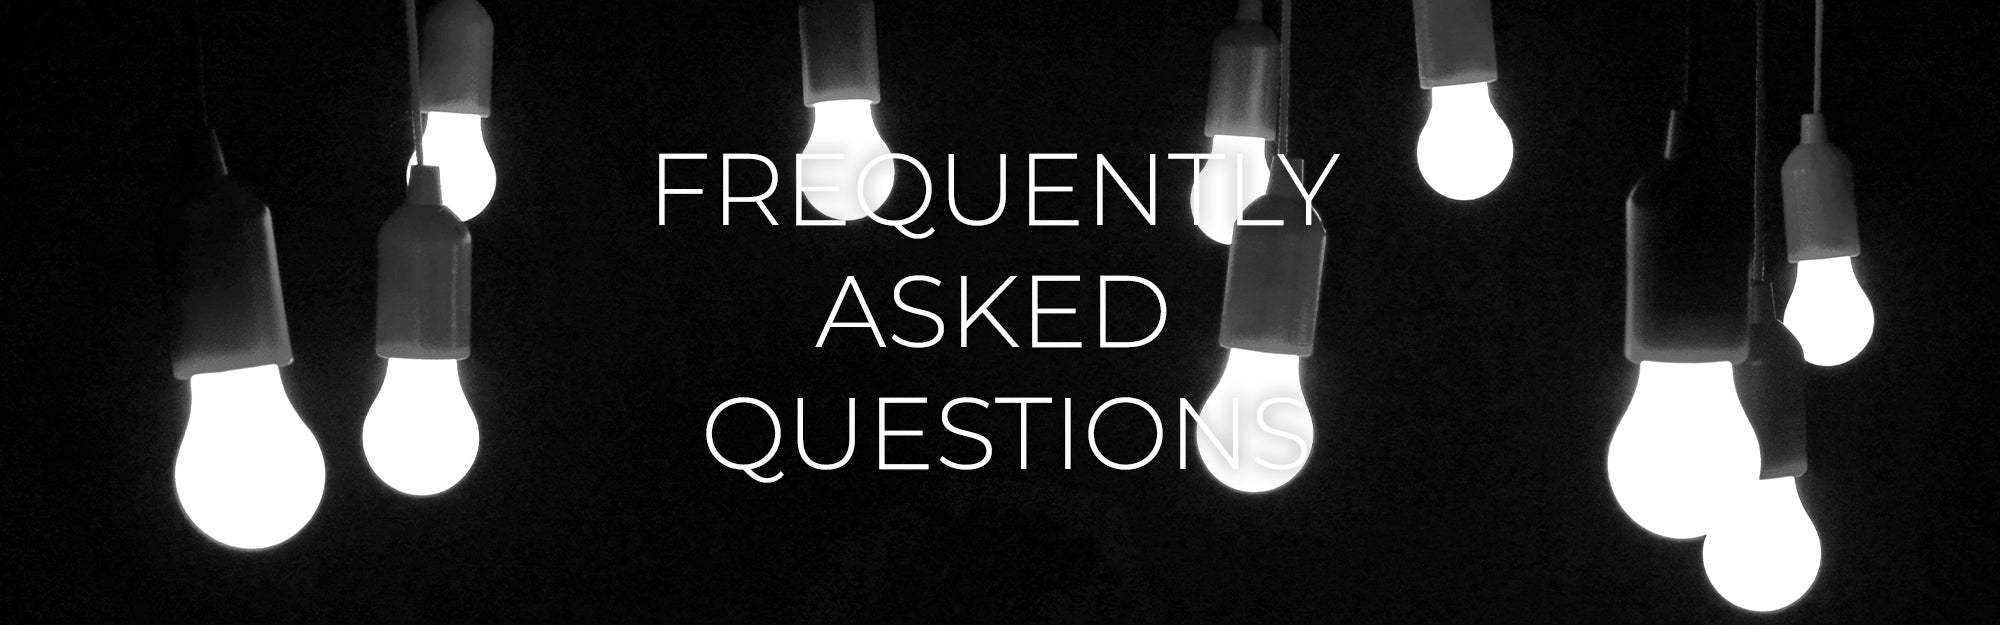 Audio Architect Apparel Frequently Asked Questions